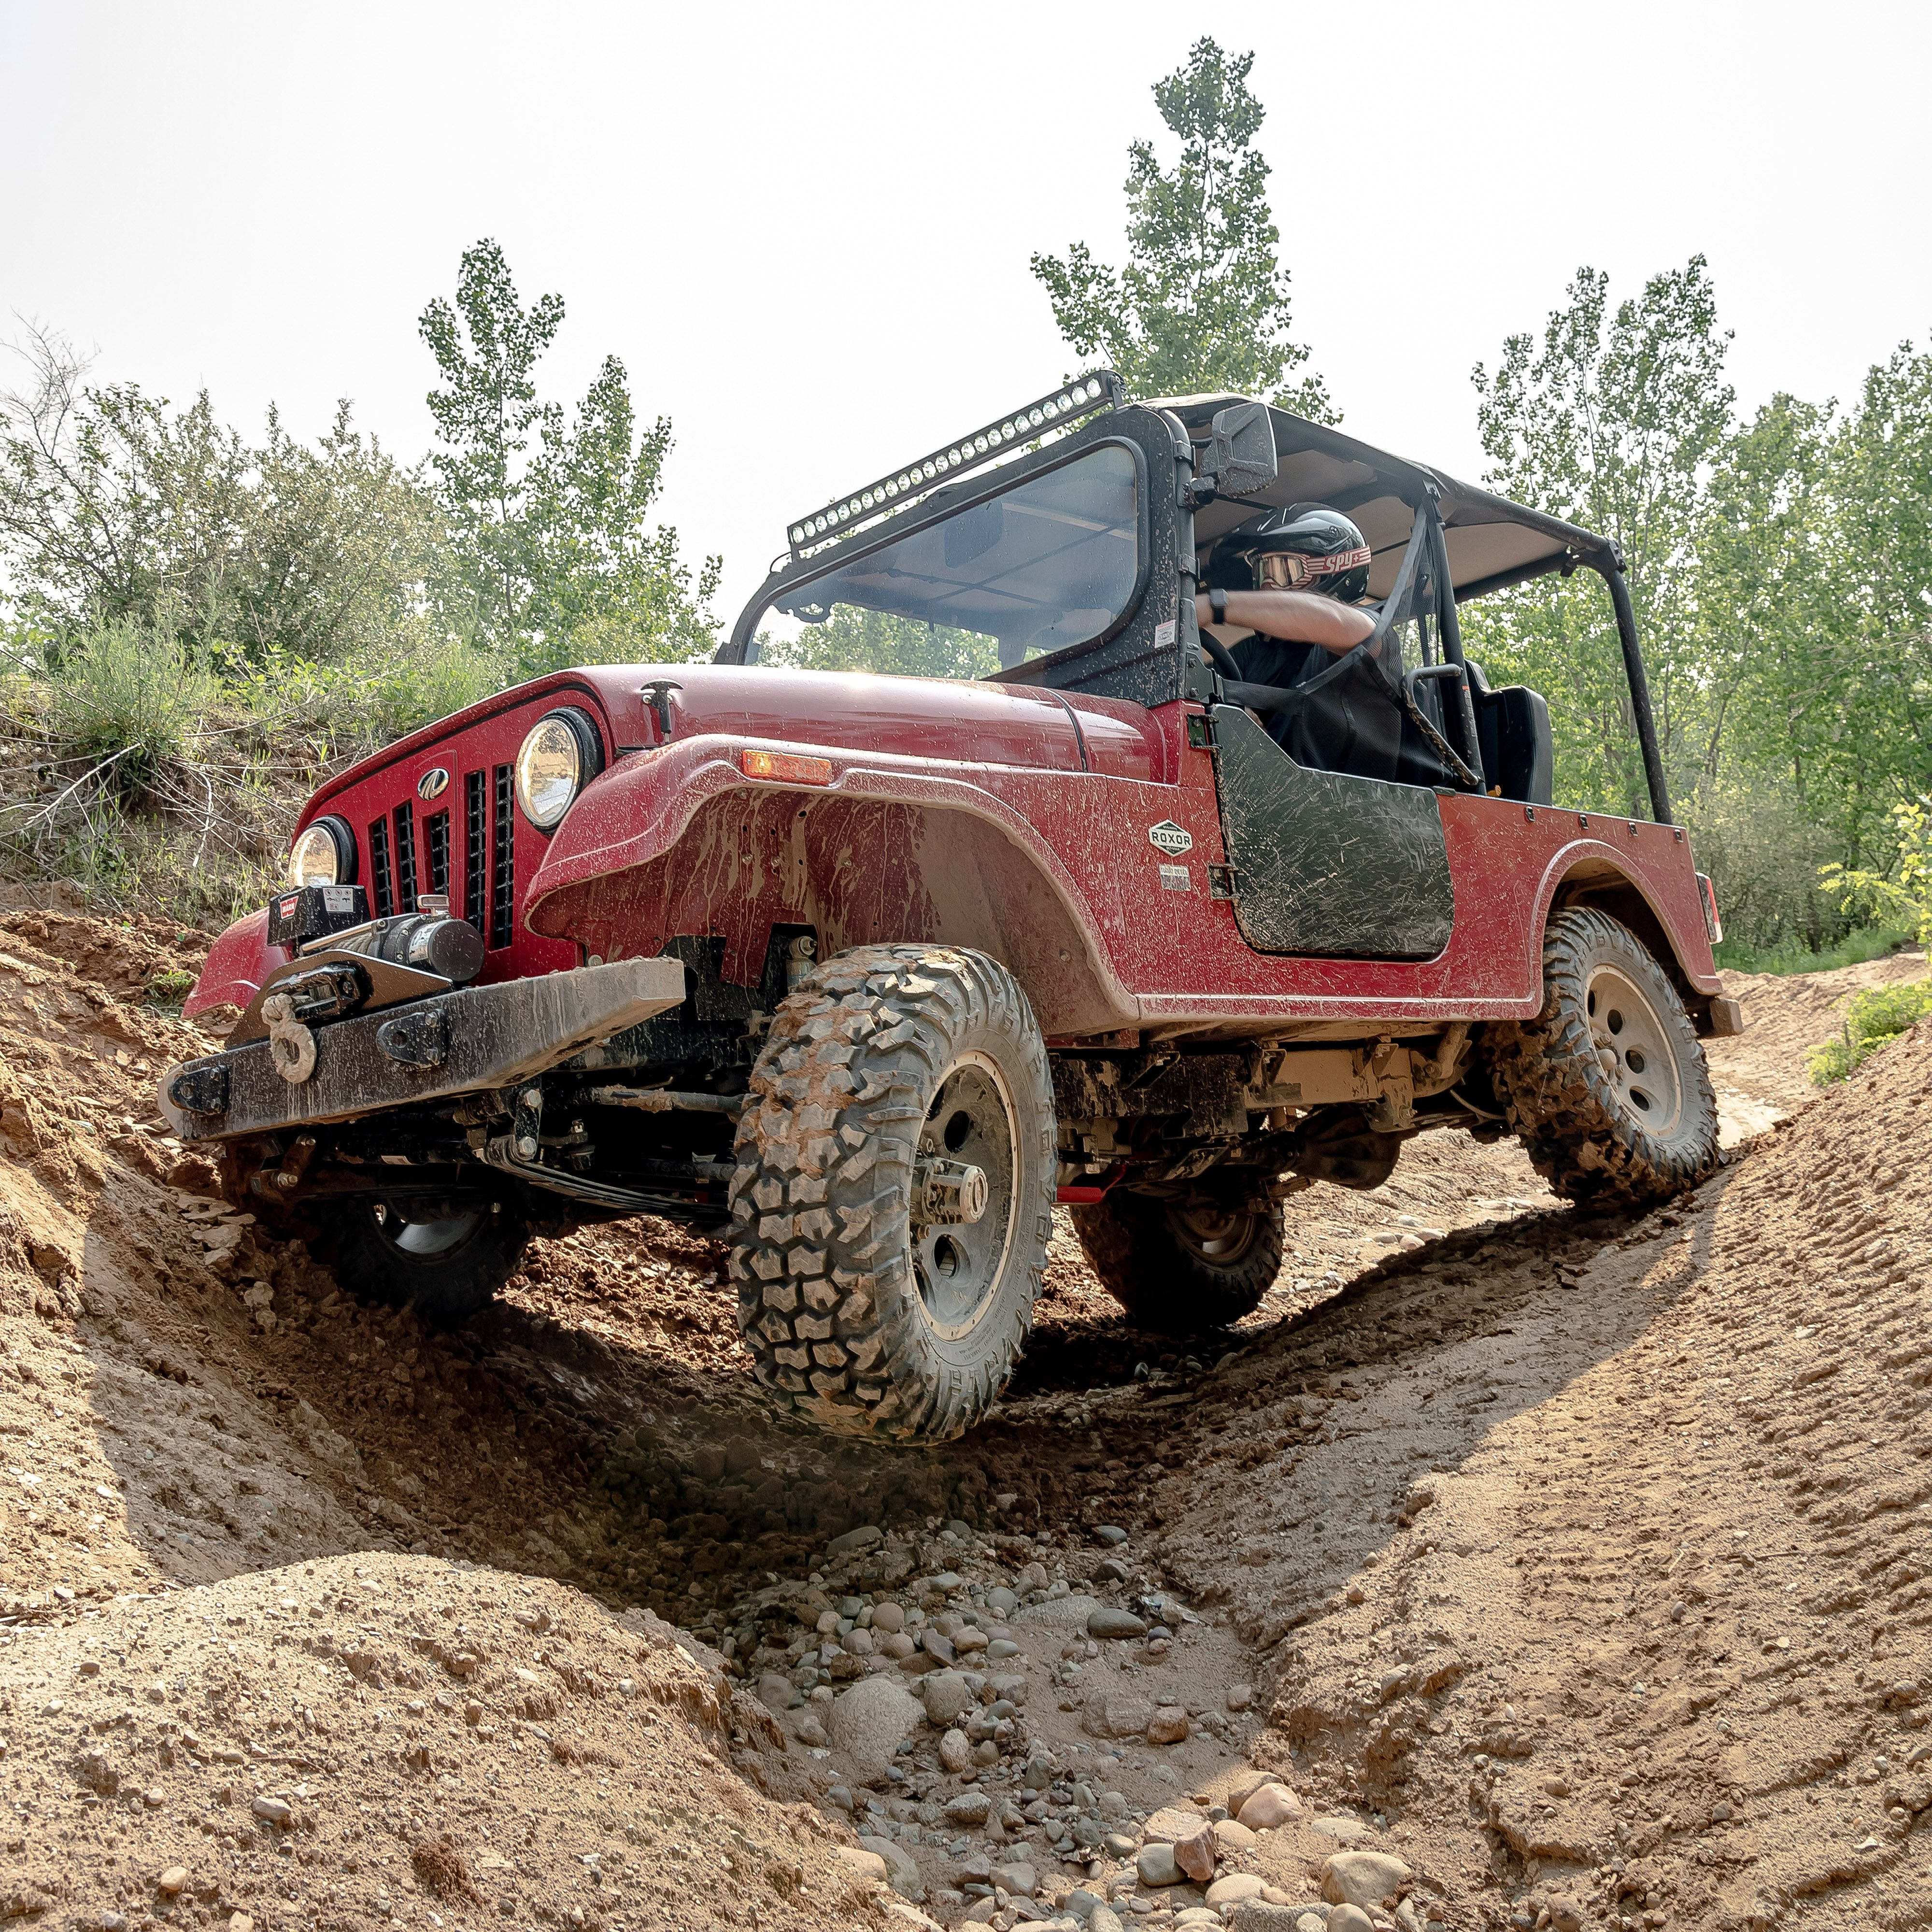 The Mahindra Roxor Is A Jeep Inspired War Hero In Utility Vehicle Guise